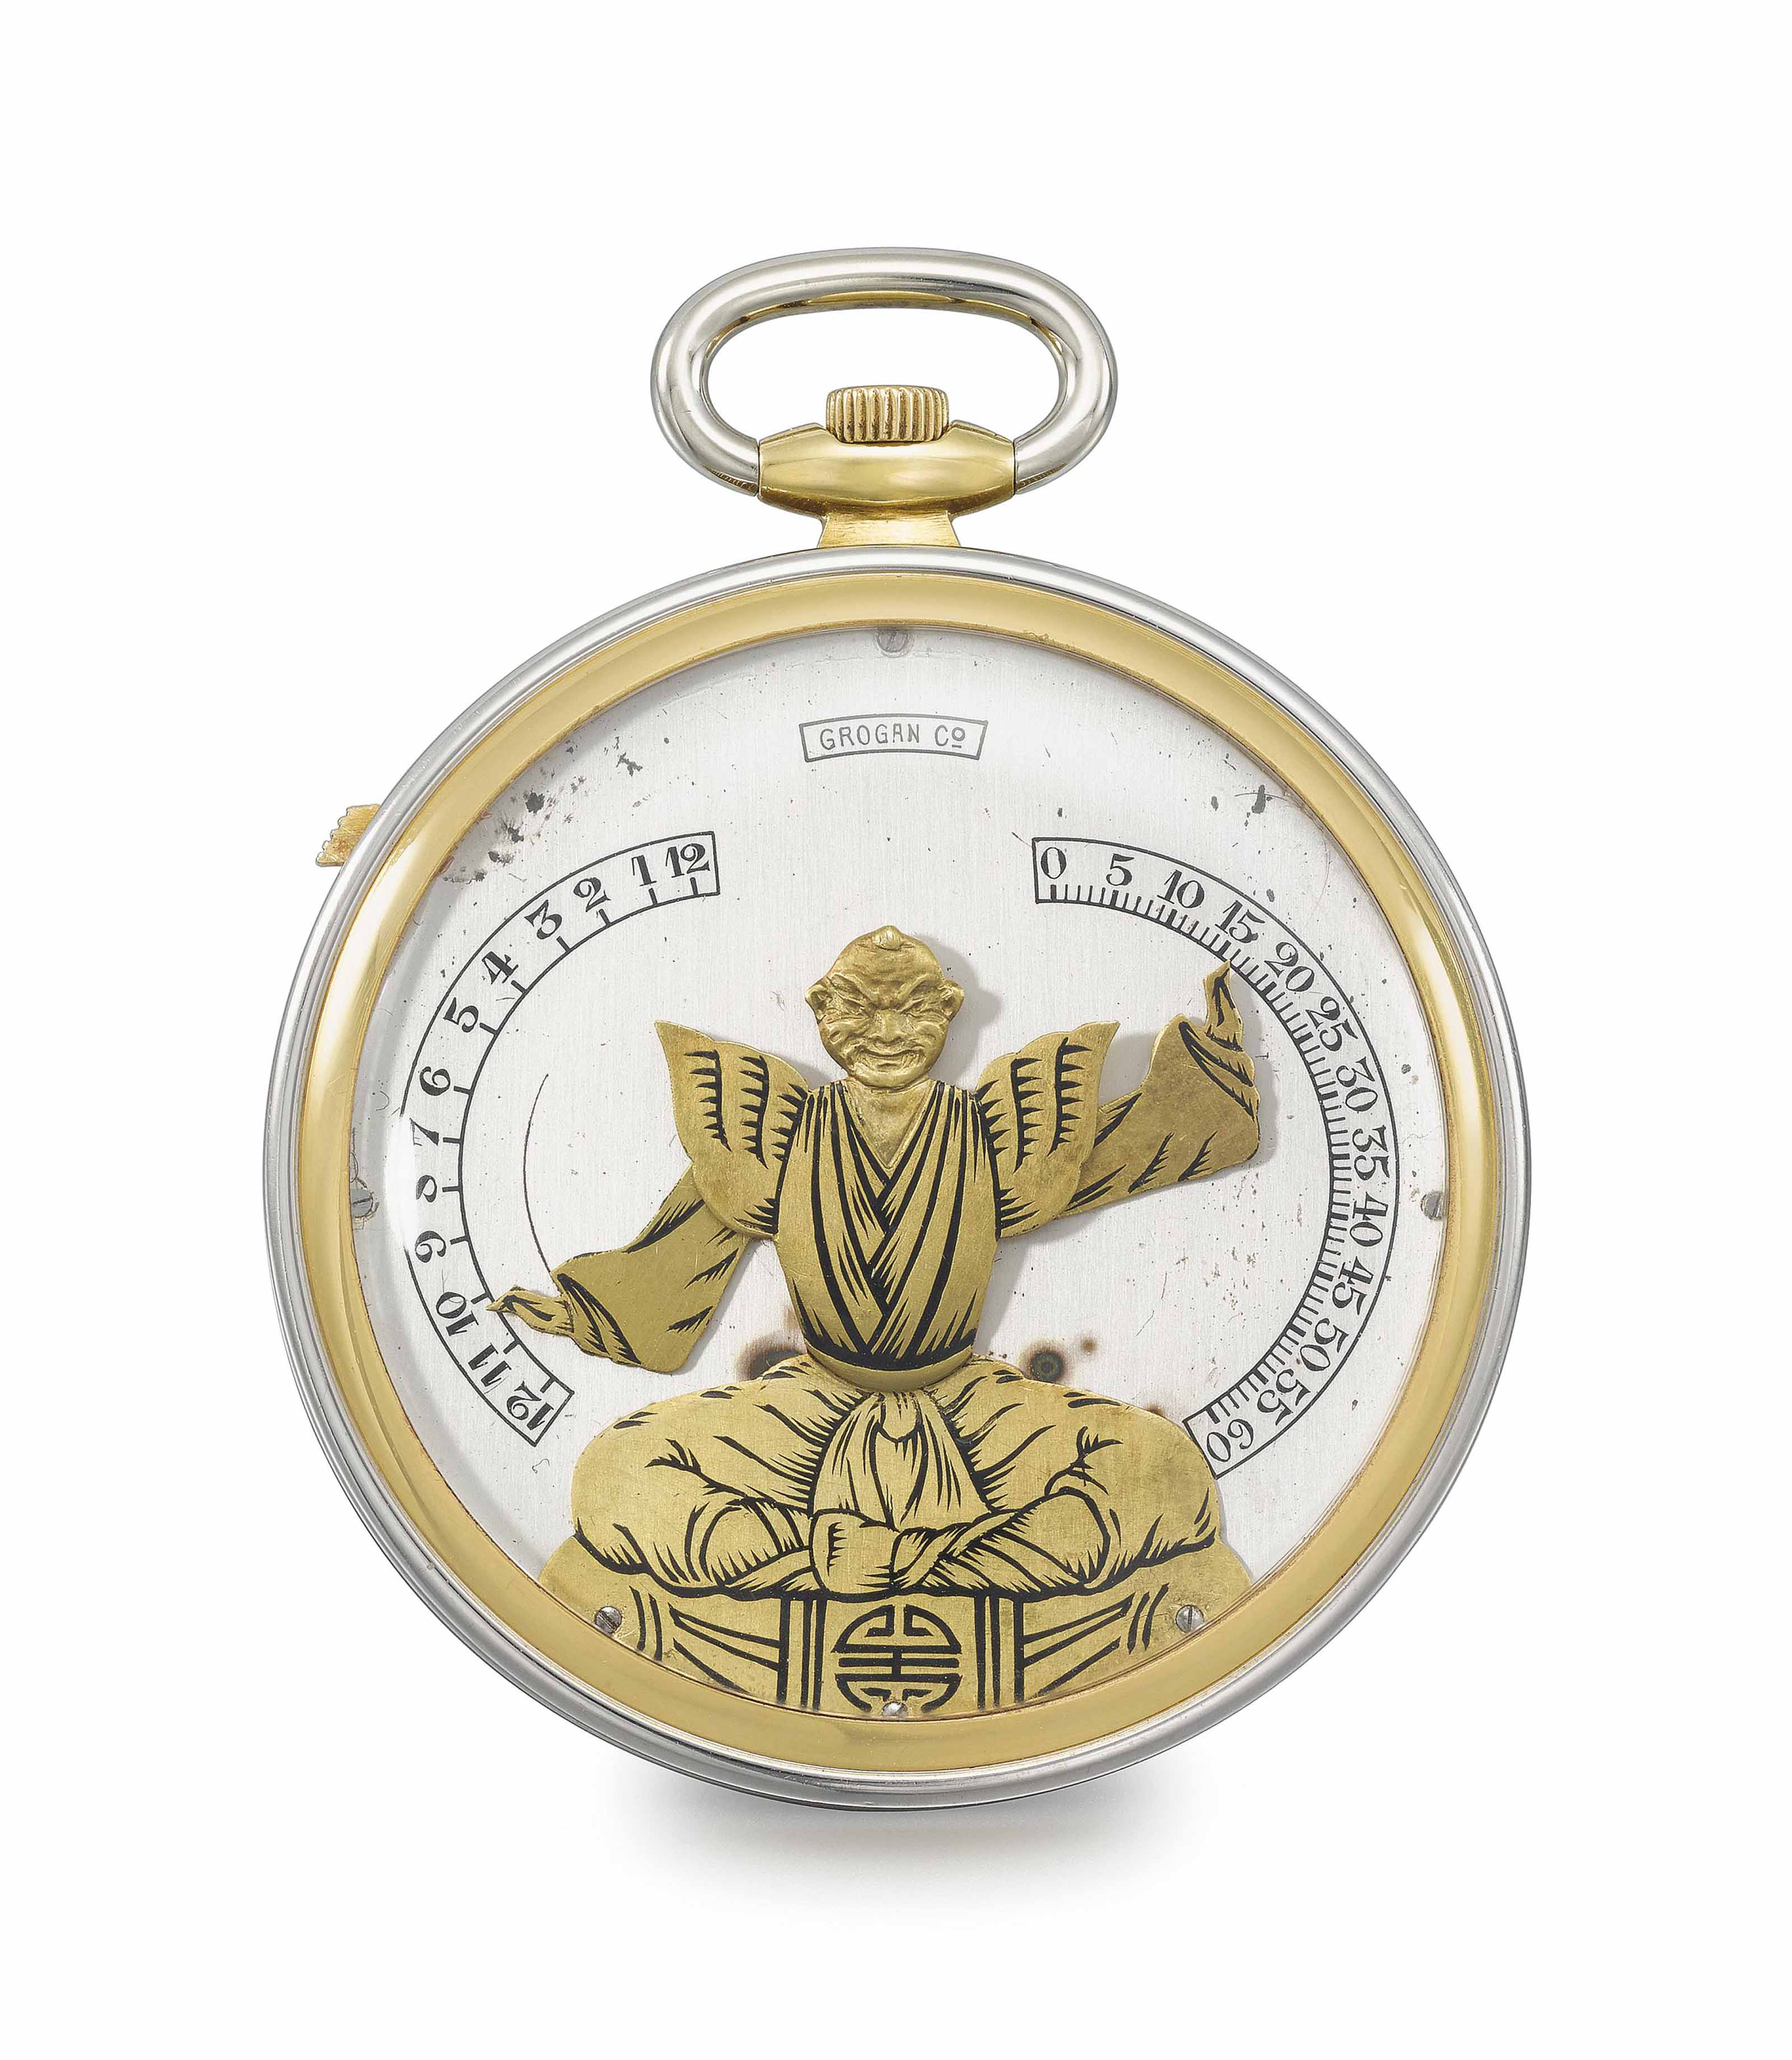 """Verger Frères, made for Grogan Co. A fine, rare and unusual 18K yellow gold and platinum openface """"bras en l'air"""" keyless lever dress watch"""